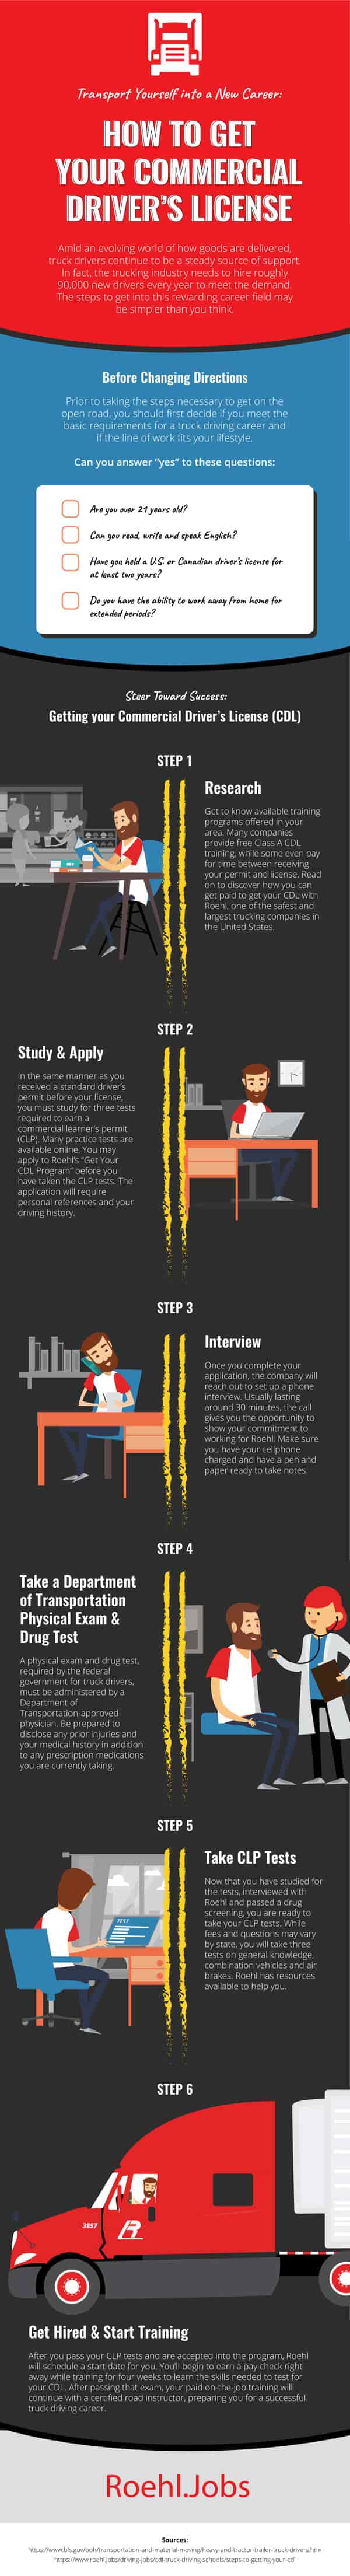 How to get your CDL infographic